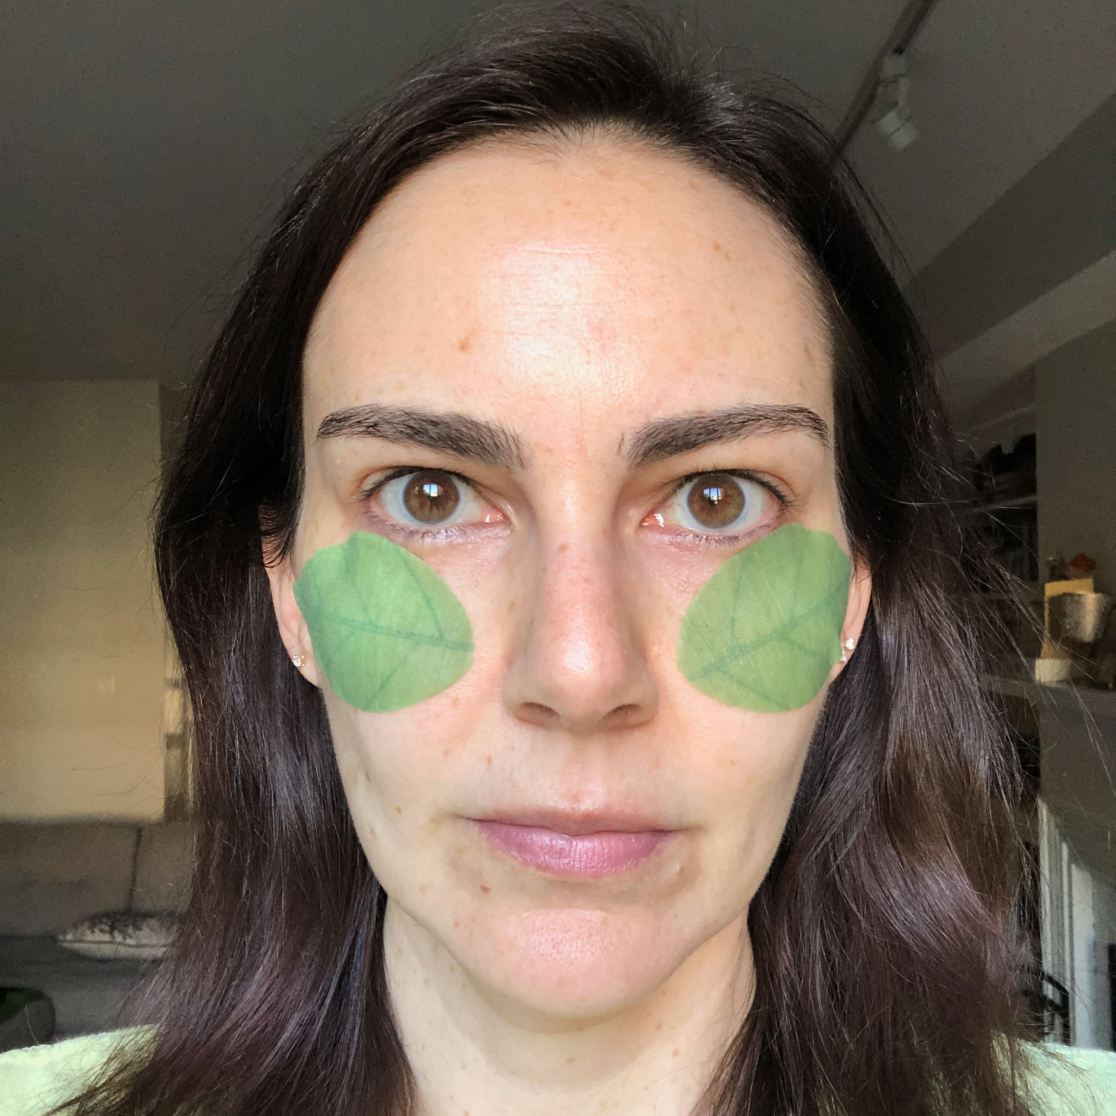 Pacifica Beauty Leave Pretty Eye Patches